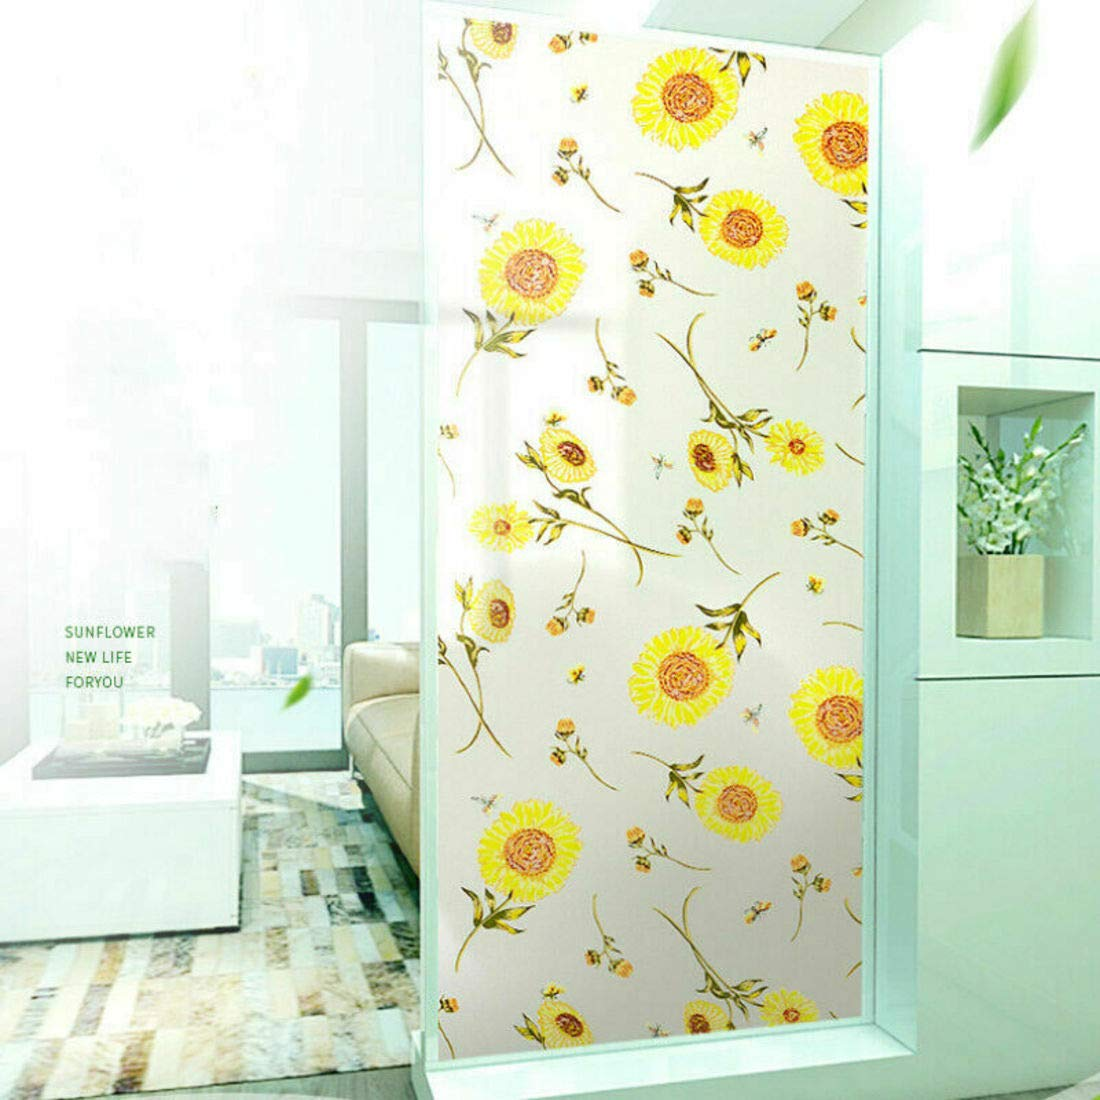 Buy Rising Sparkle Window Films Privacy Film Self Adhesive Decorative Film  for Glass Surface Heat Control Anti UV 18 x 48 inches (Marie 18 x 48  Inches) Online at Low Prices in India - Amazon.in